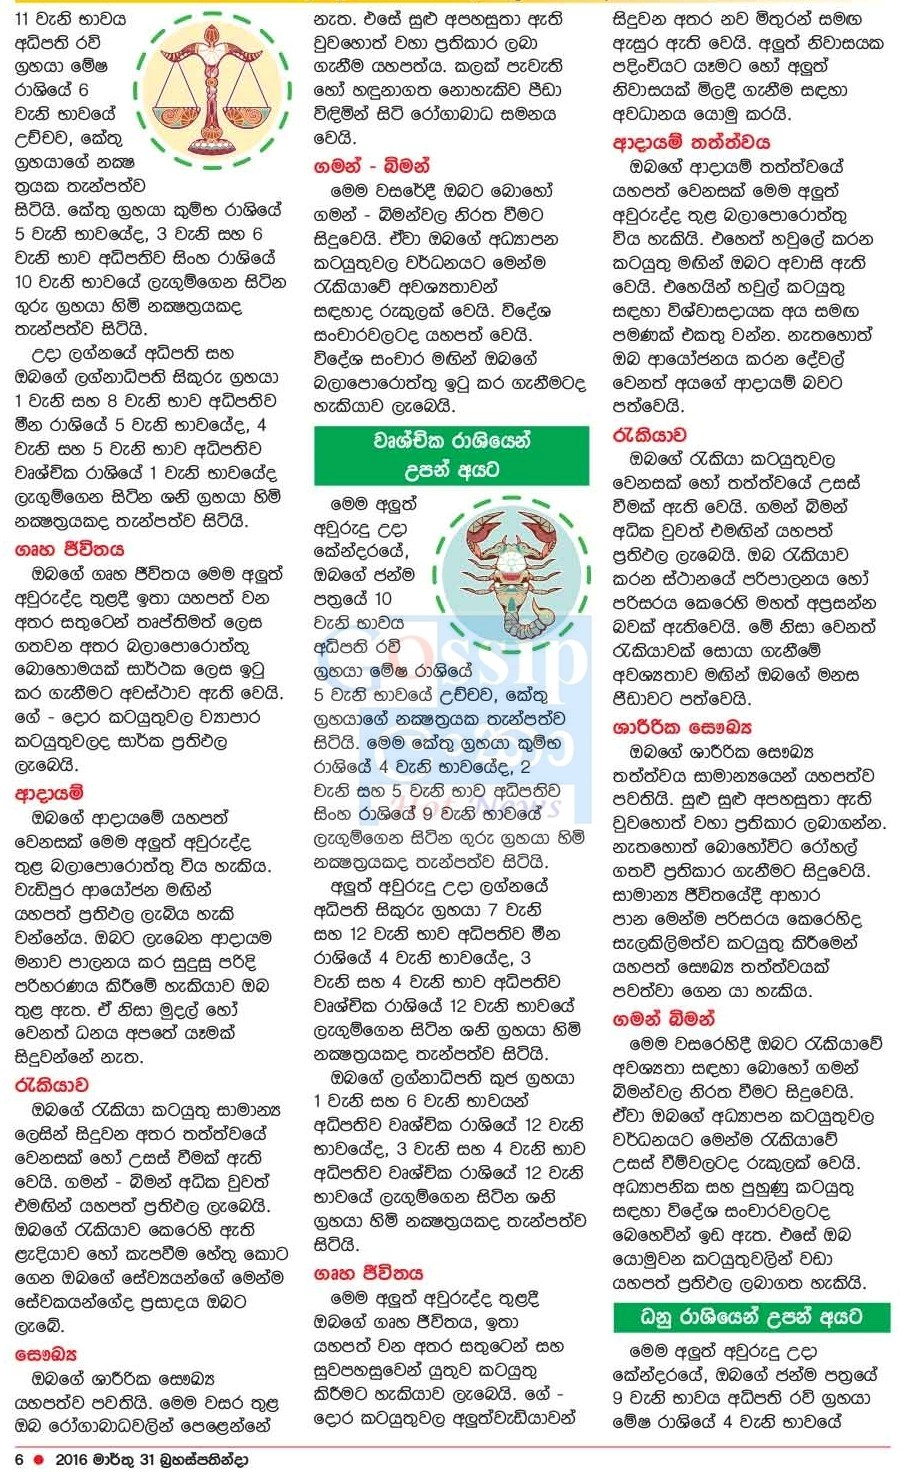 සිංහල අවුරුදු පලාපල - Sinhala New Year Lagna palapala 2016 | Sri Lanka Newspaper Articles